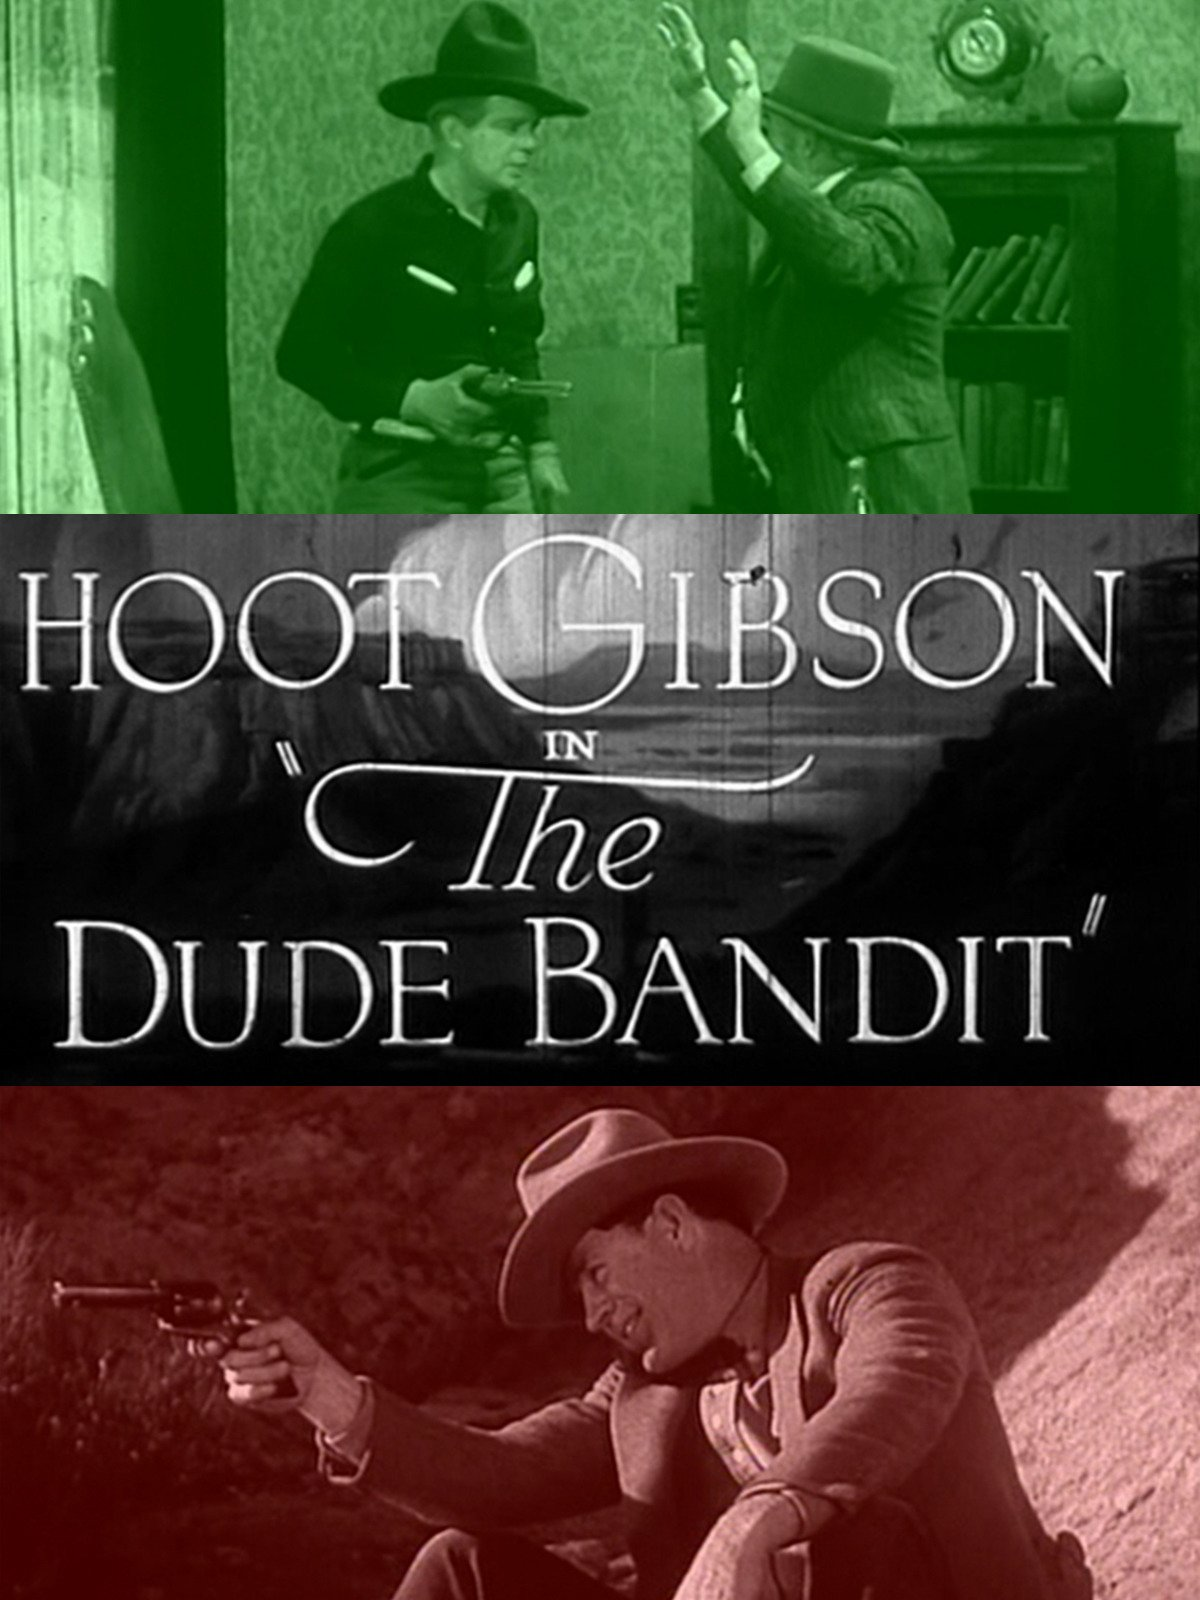 The Dude Bandit